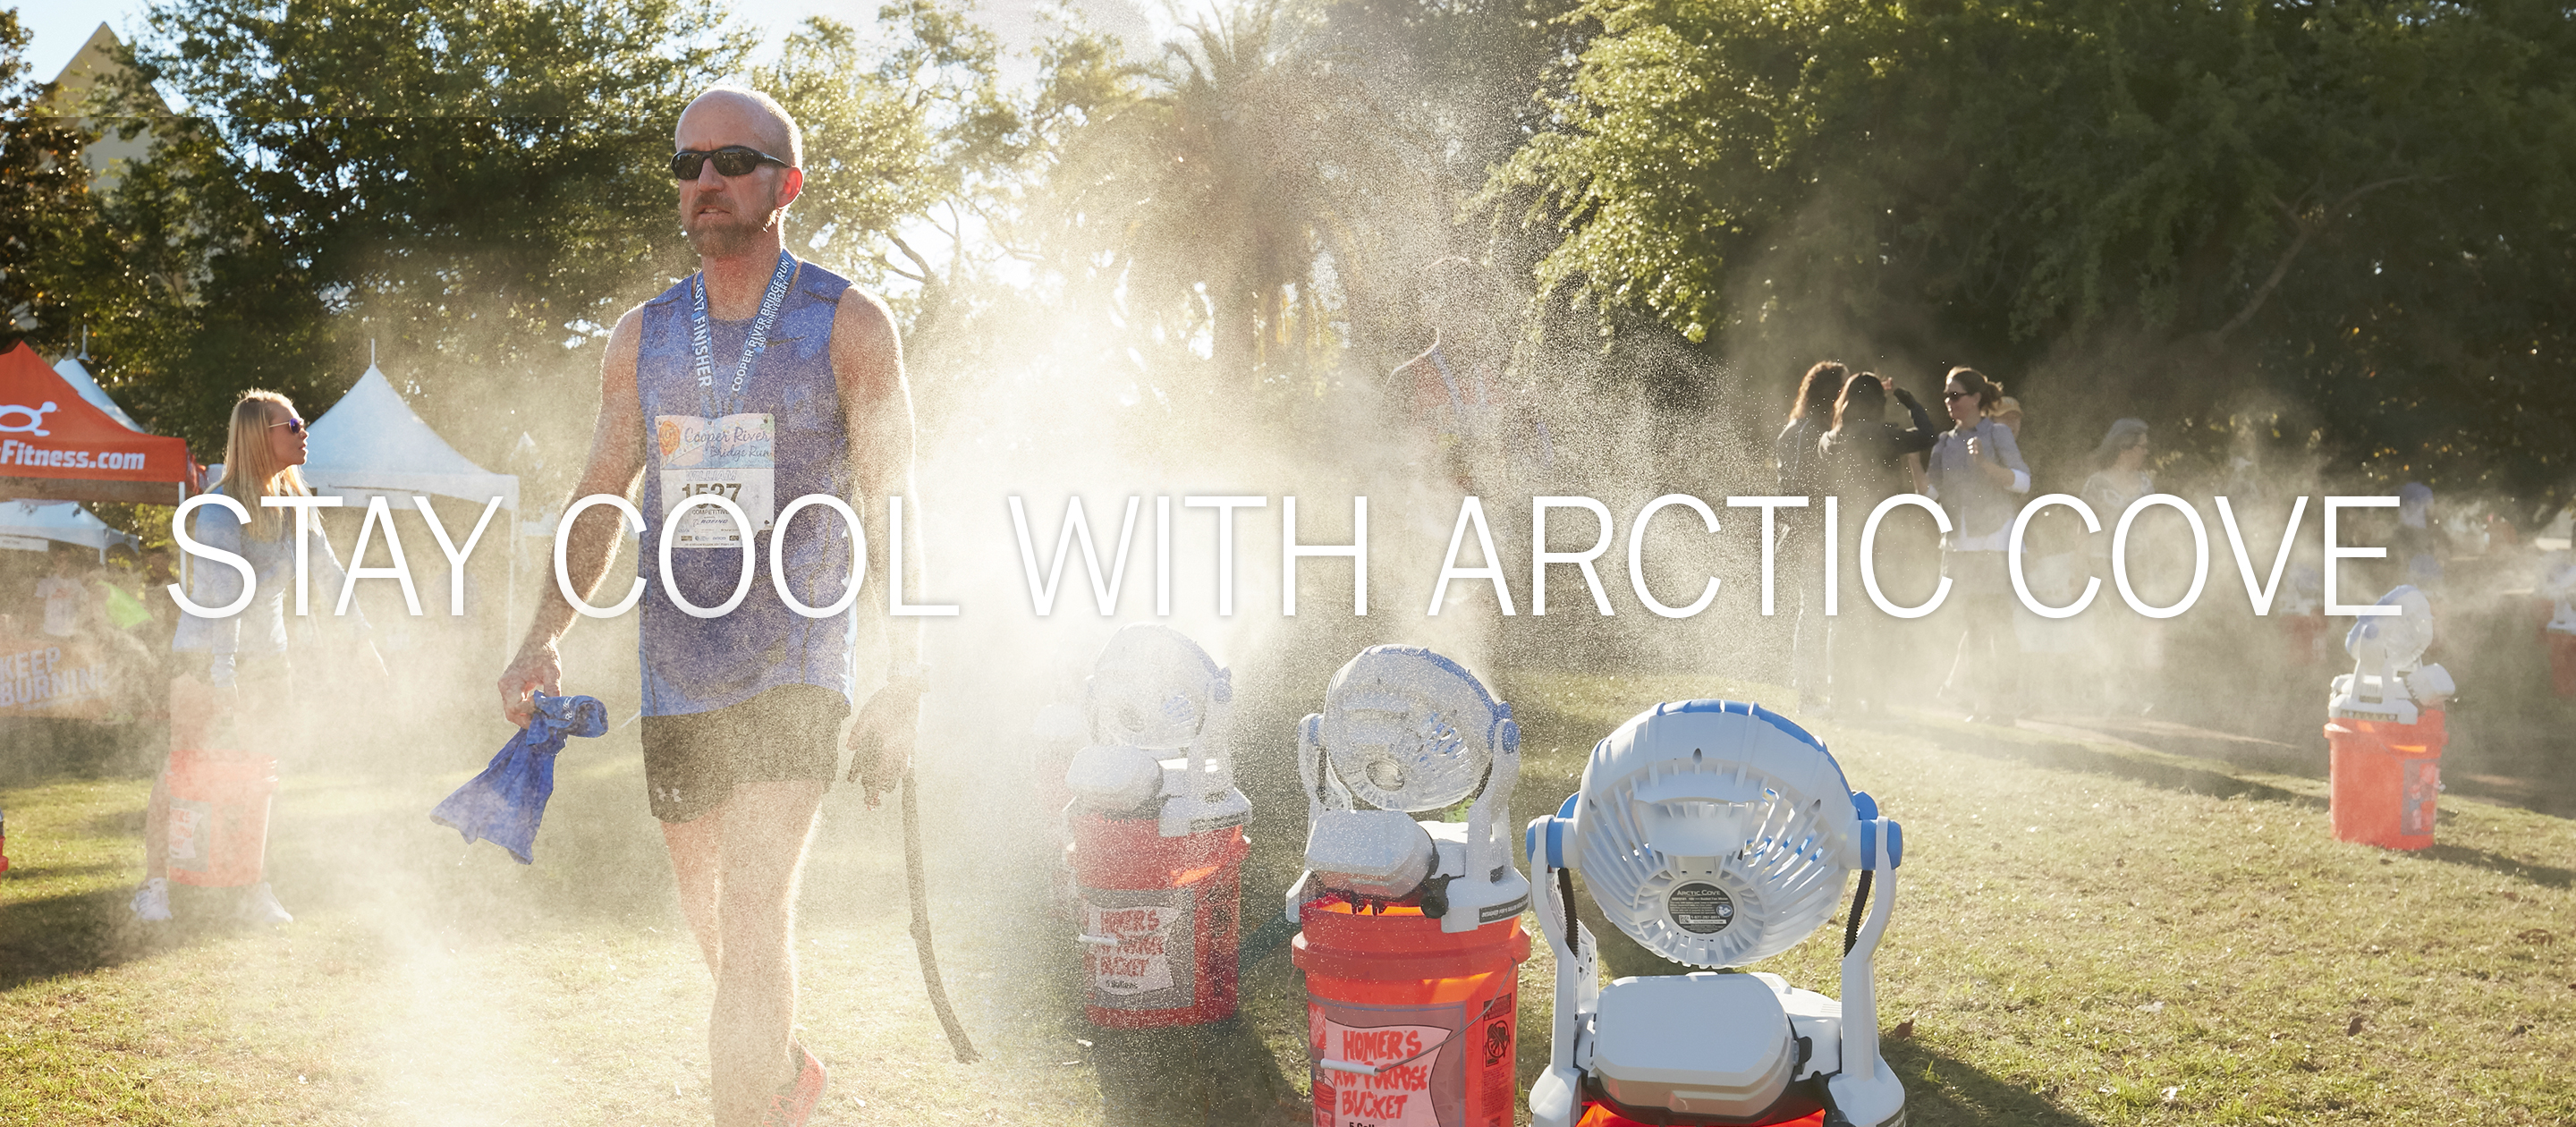 Stay cool with Arctic Cove